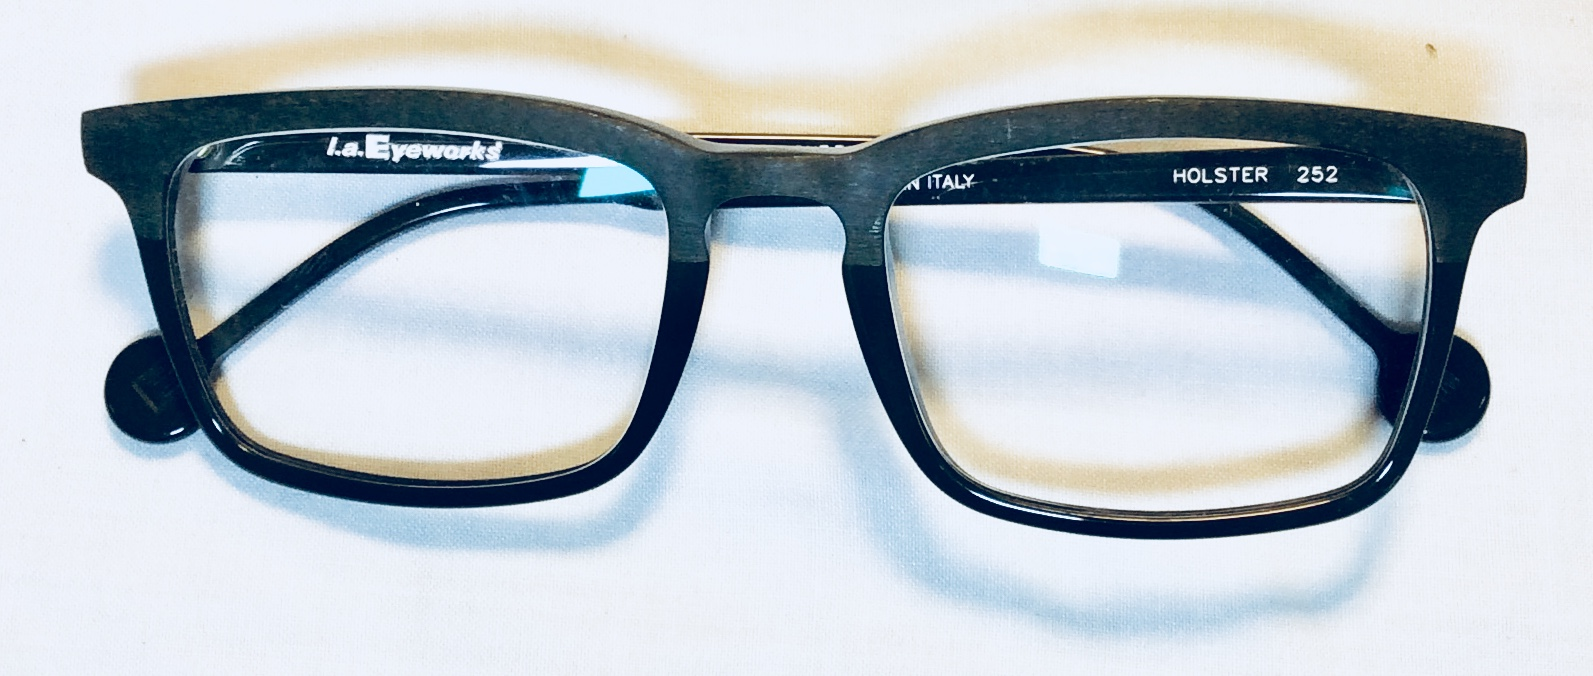 Green ARL glasses